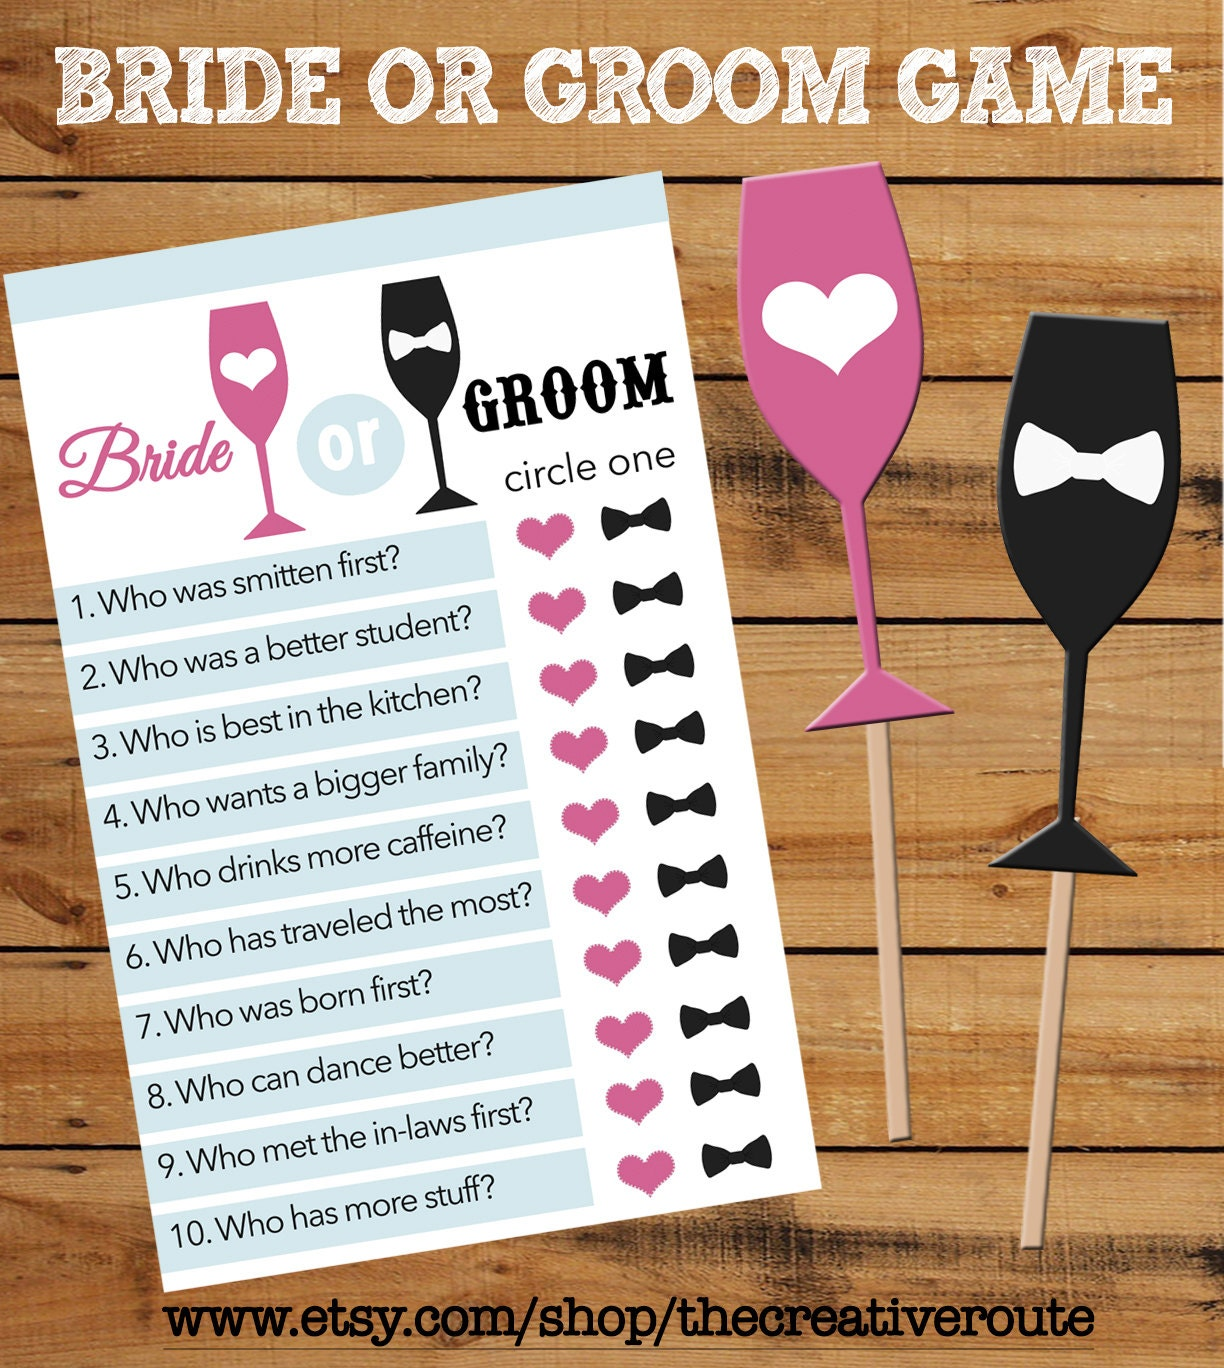 Wedding Reception Games For Bride And Groom